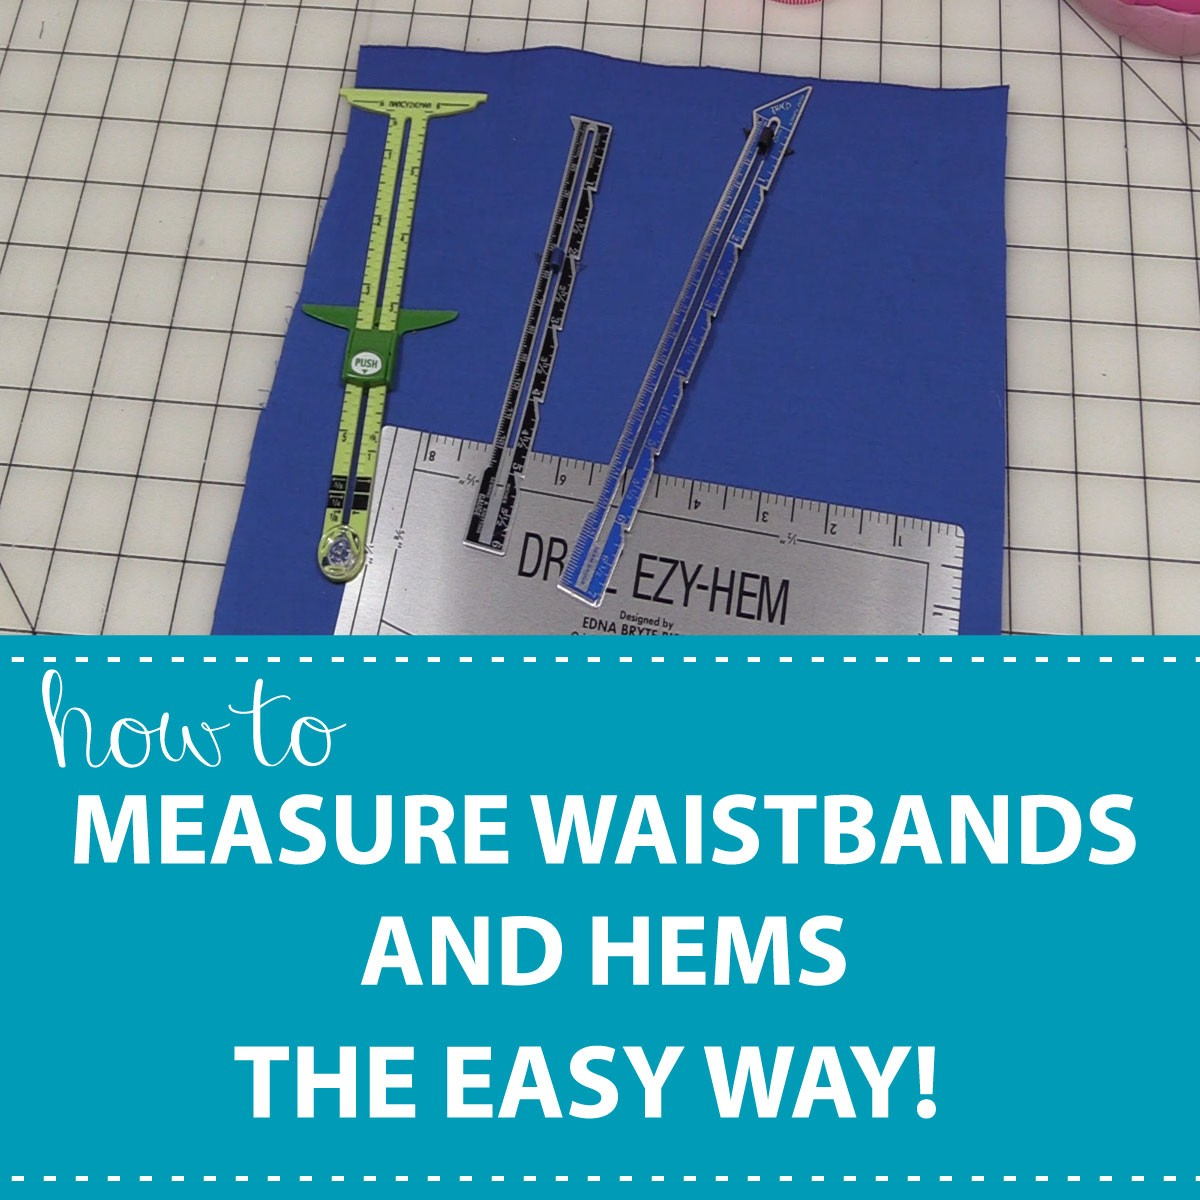 How to Use a Seam Gauge to Measure Waistbands and Hems